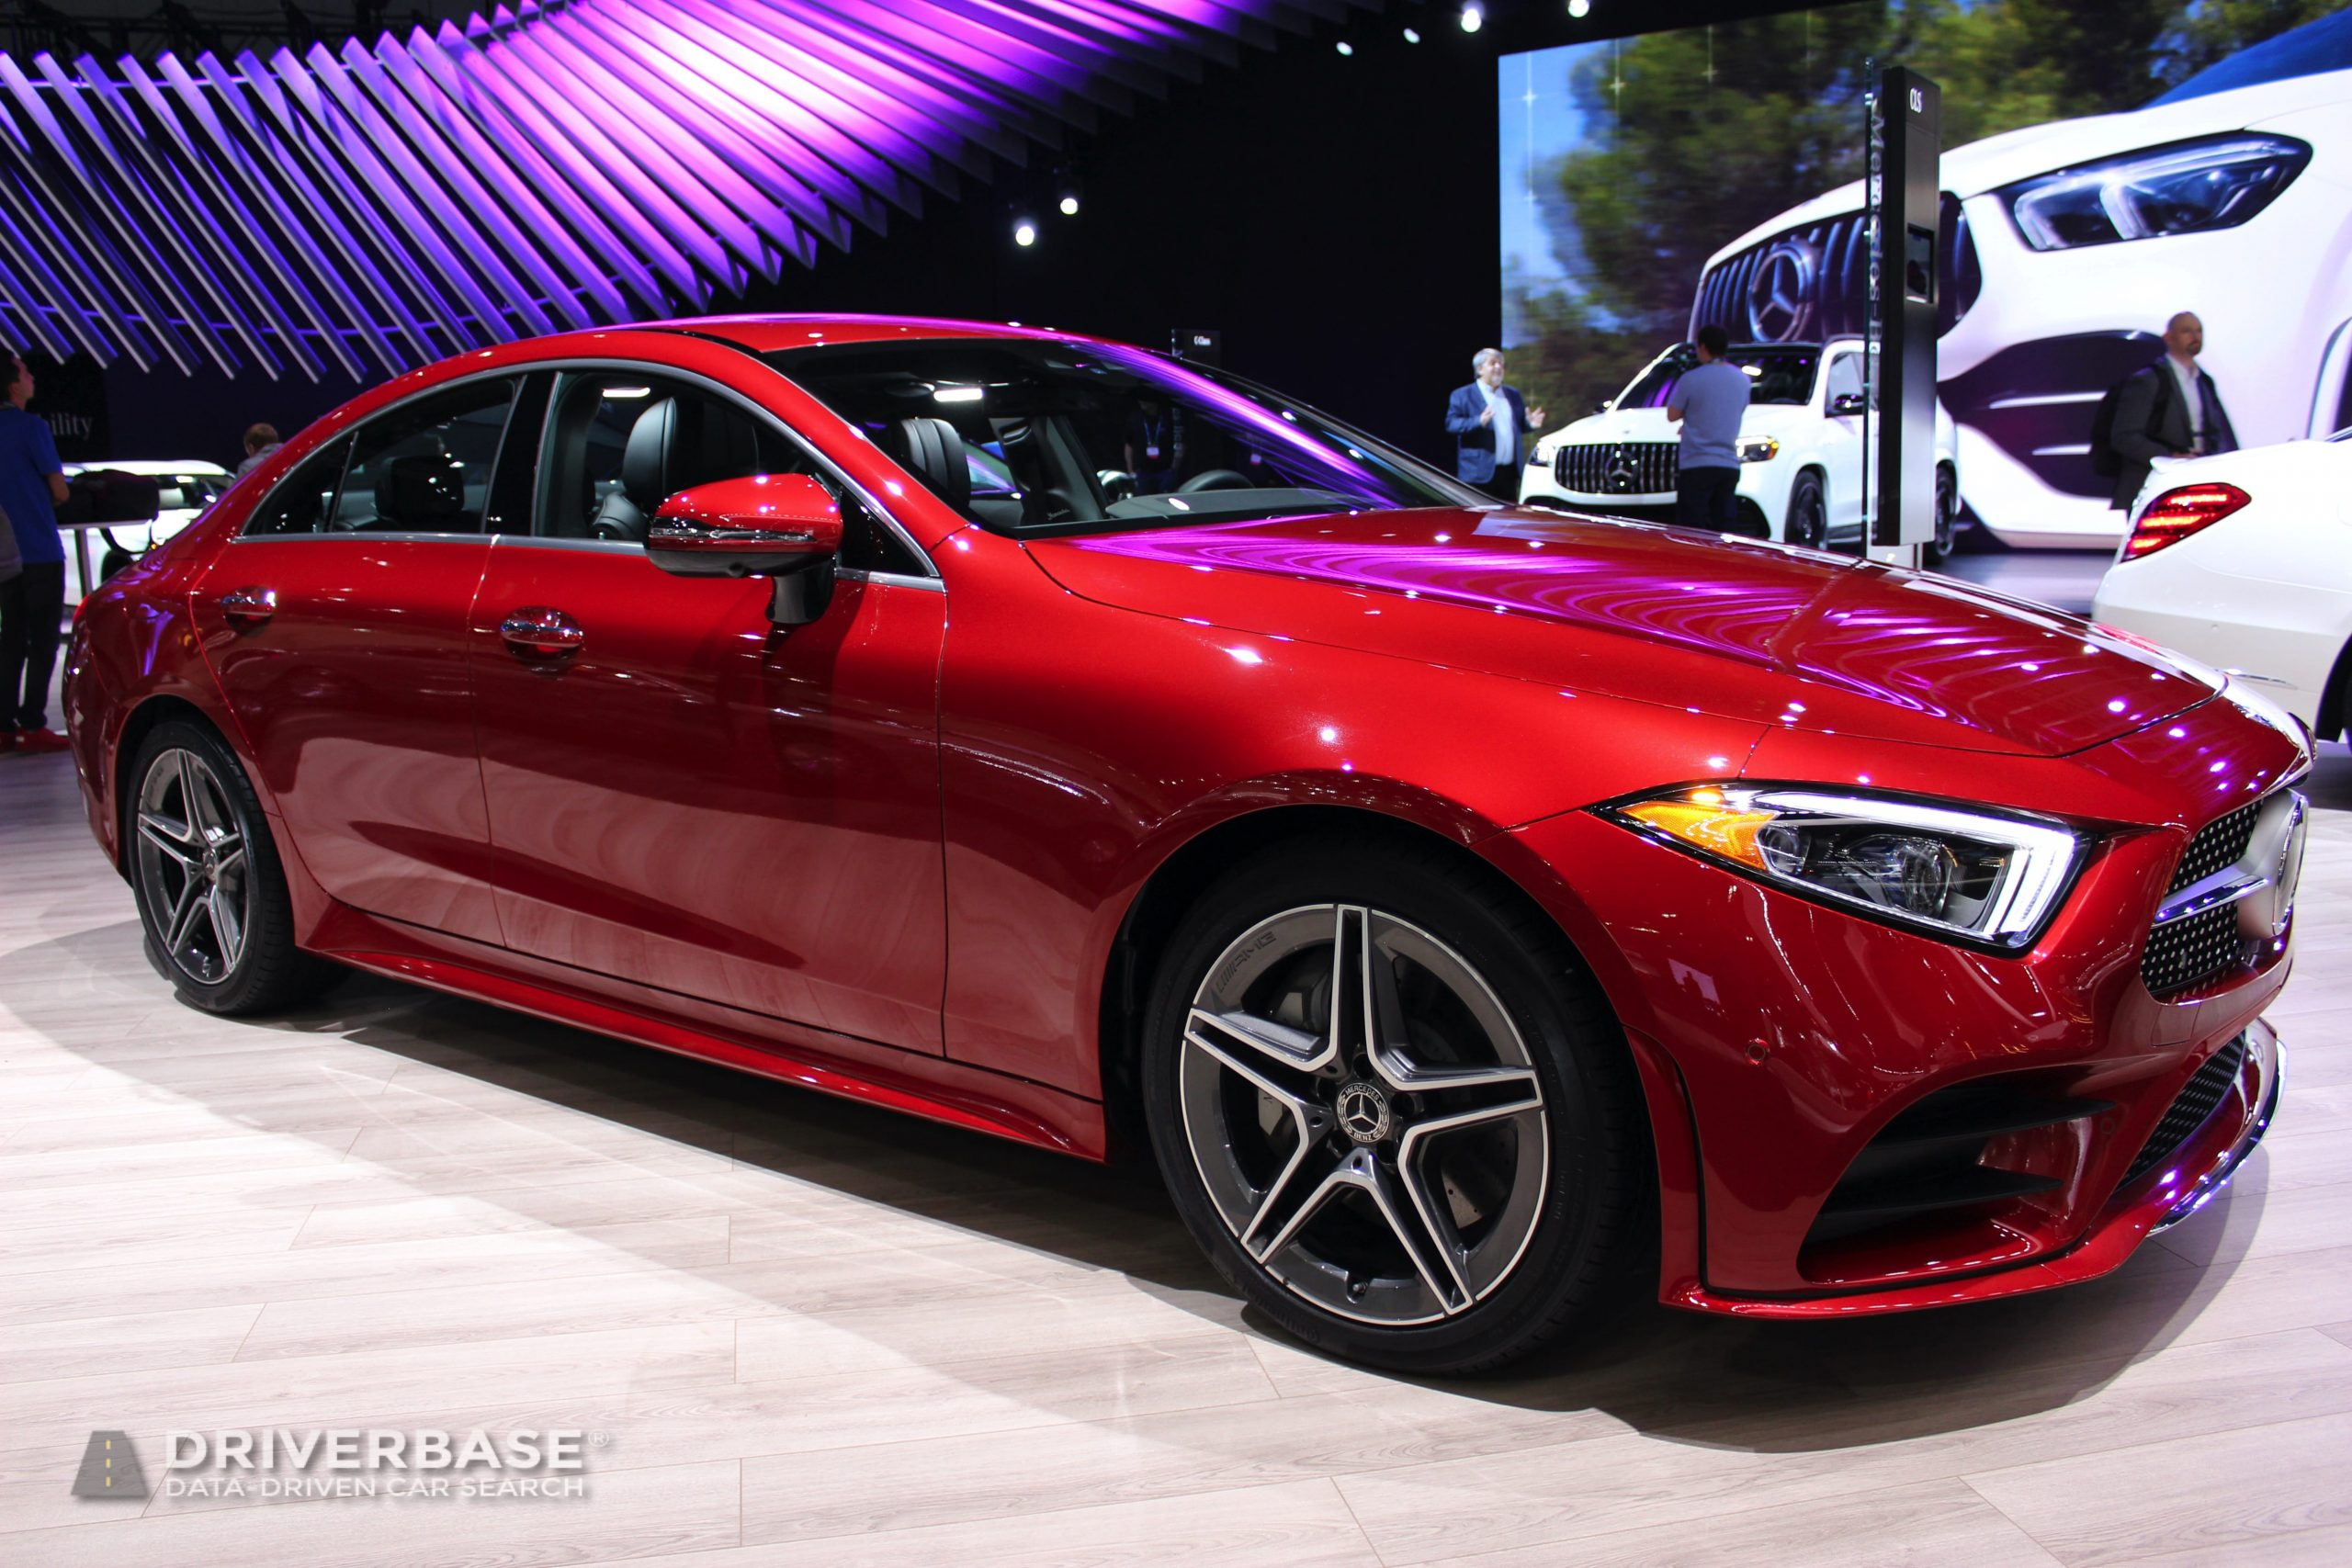 2020 Mercedes-Benz CLS 450 at the 2019 Los Angeles Auto Show